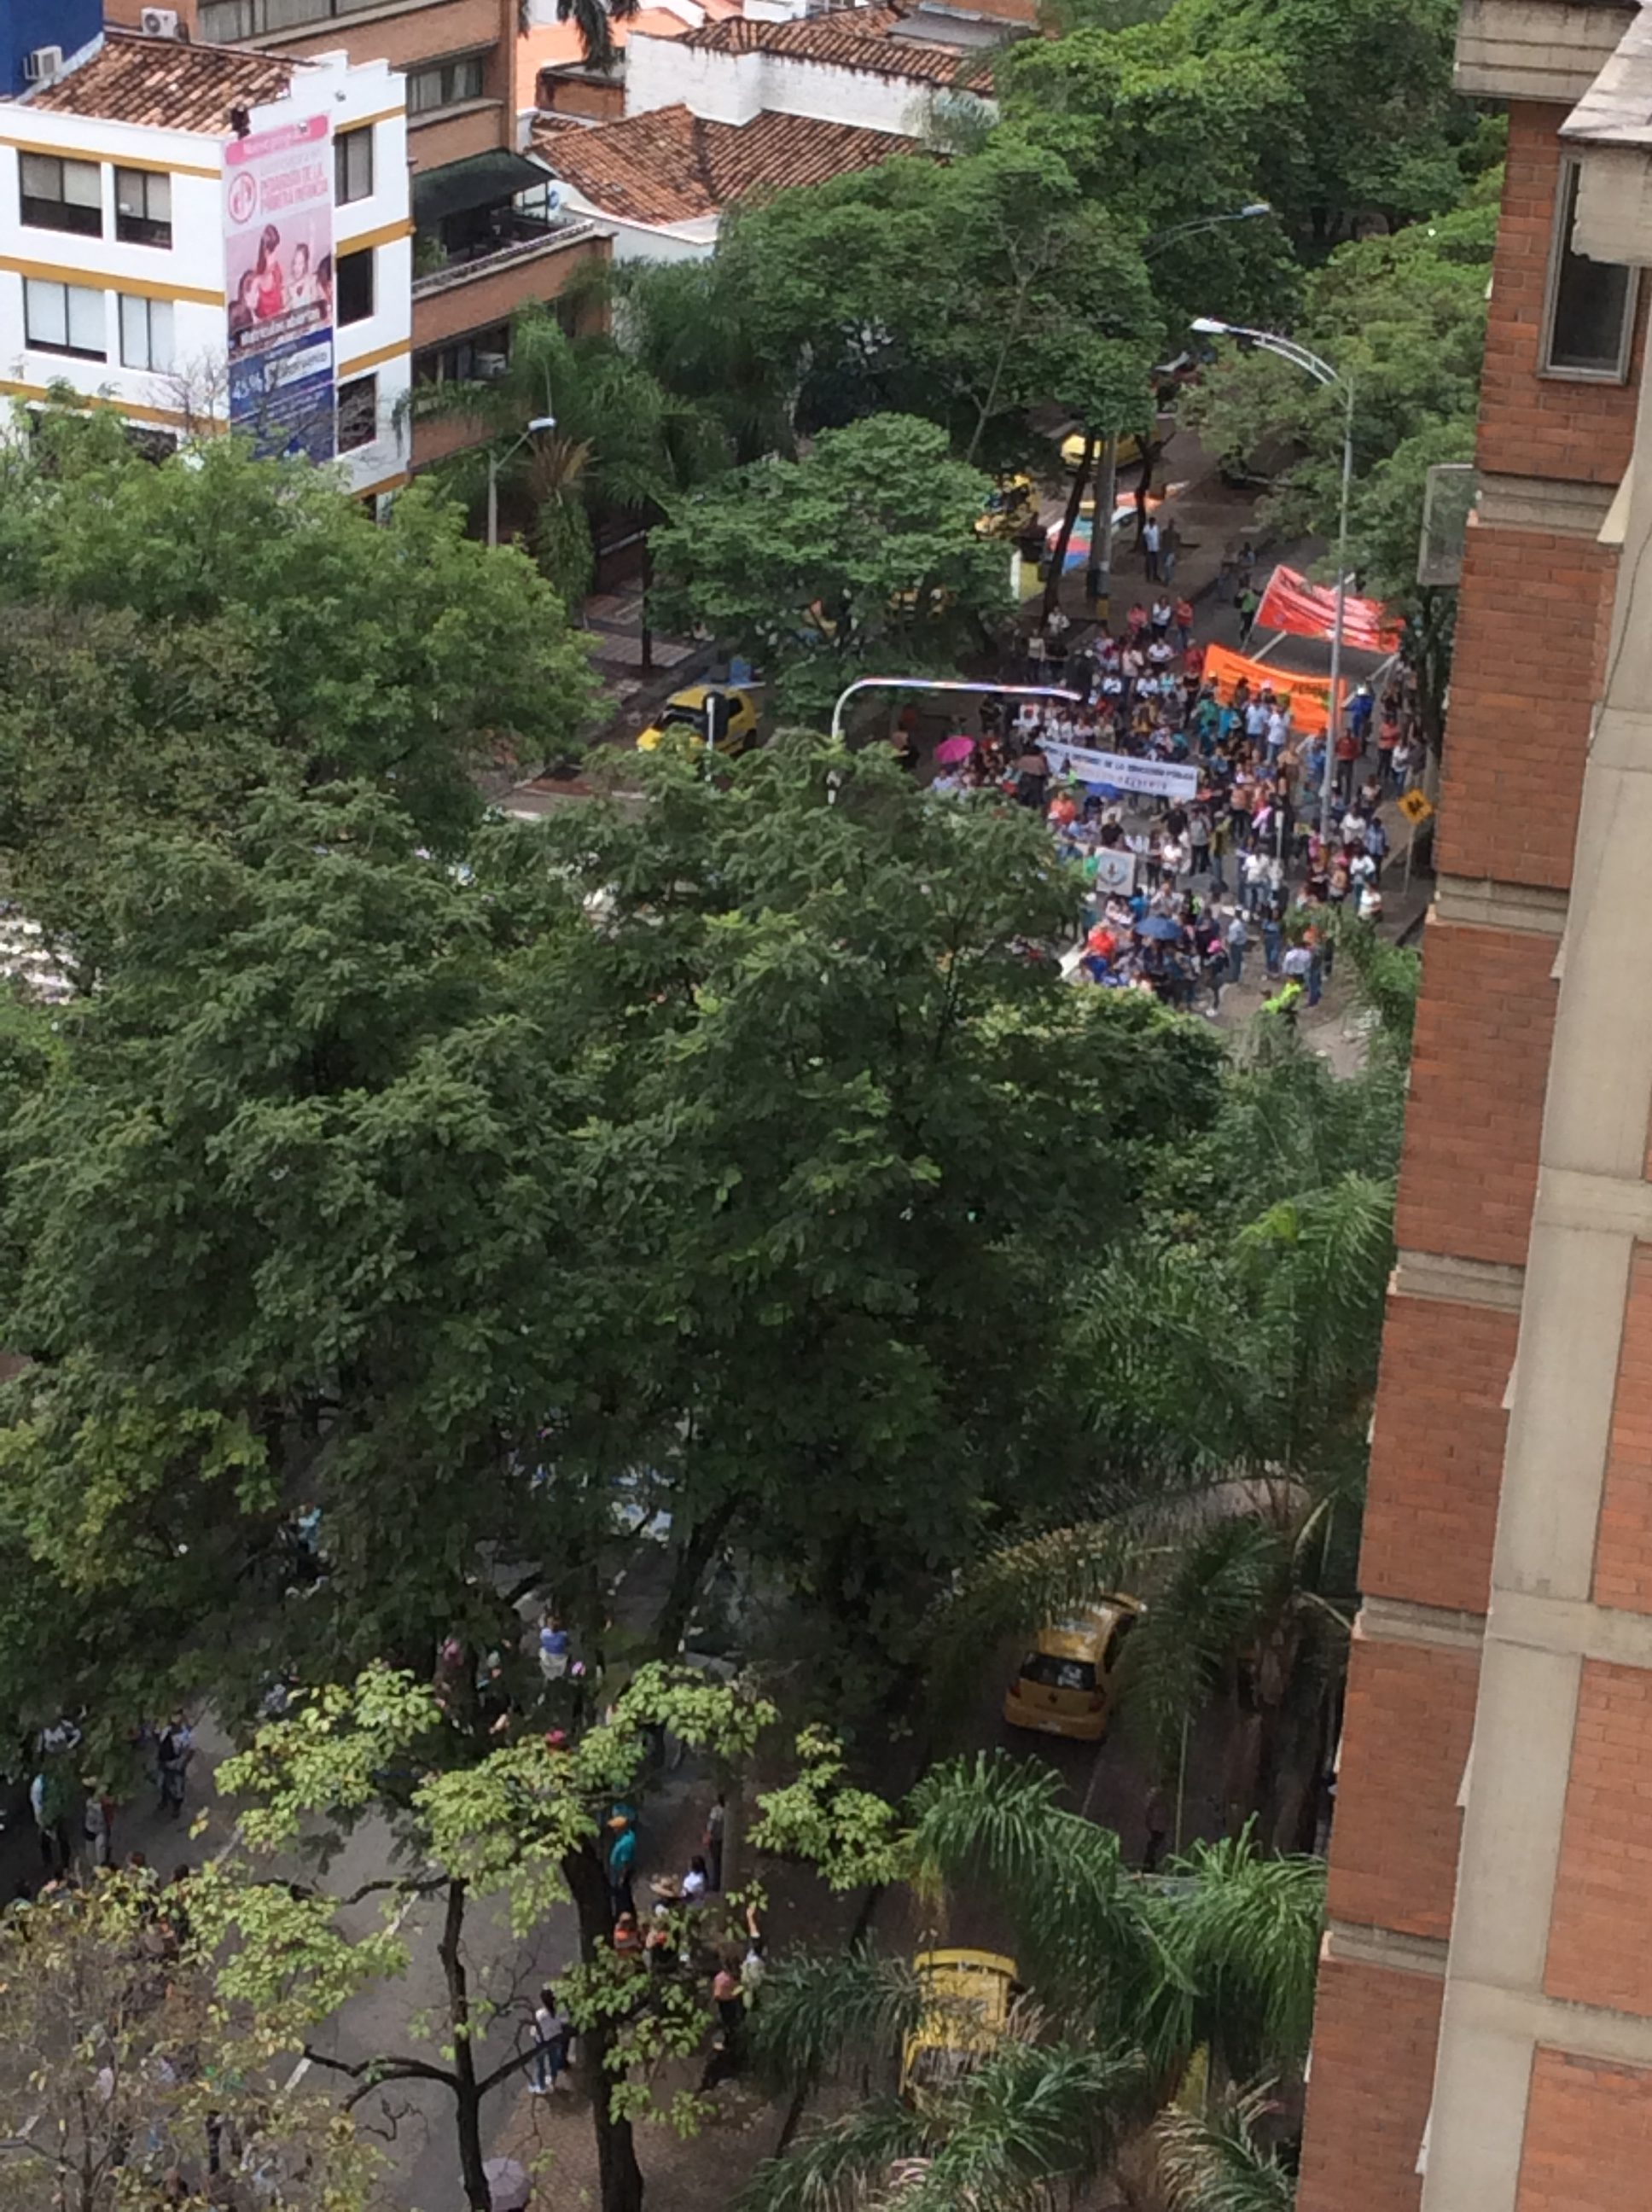 The Noisy Protest